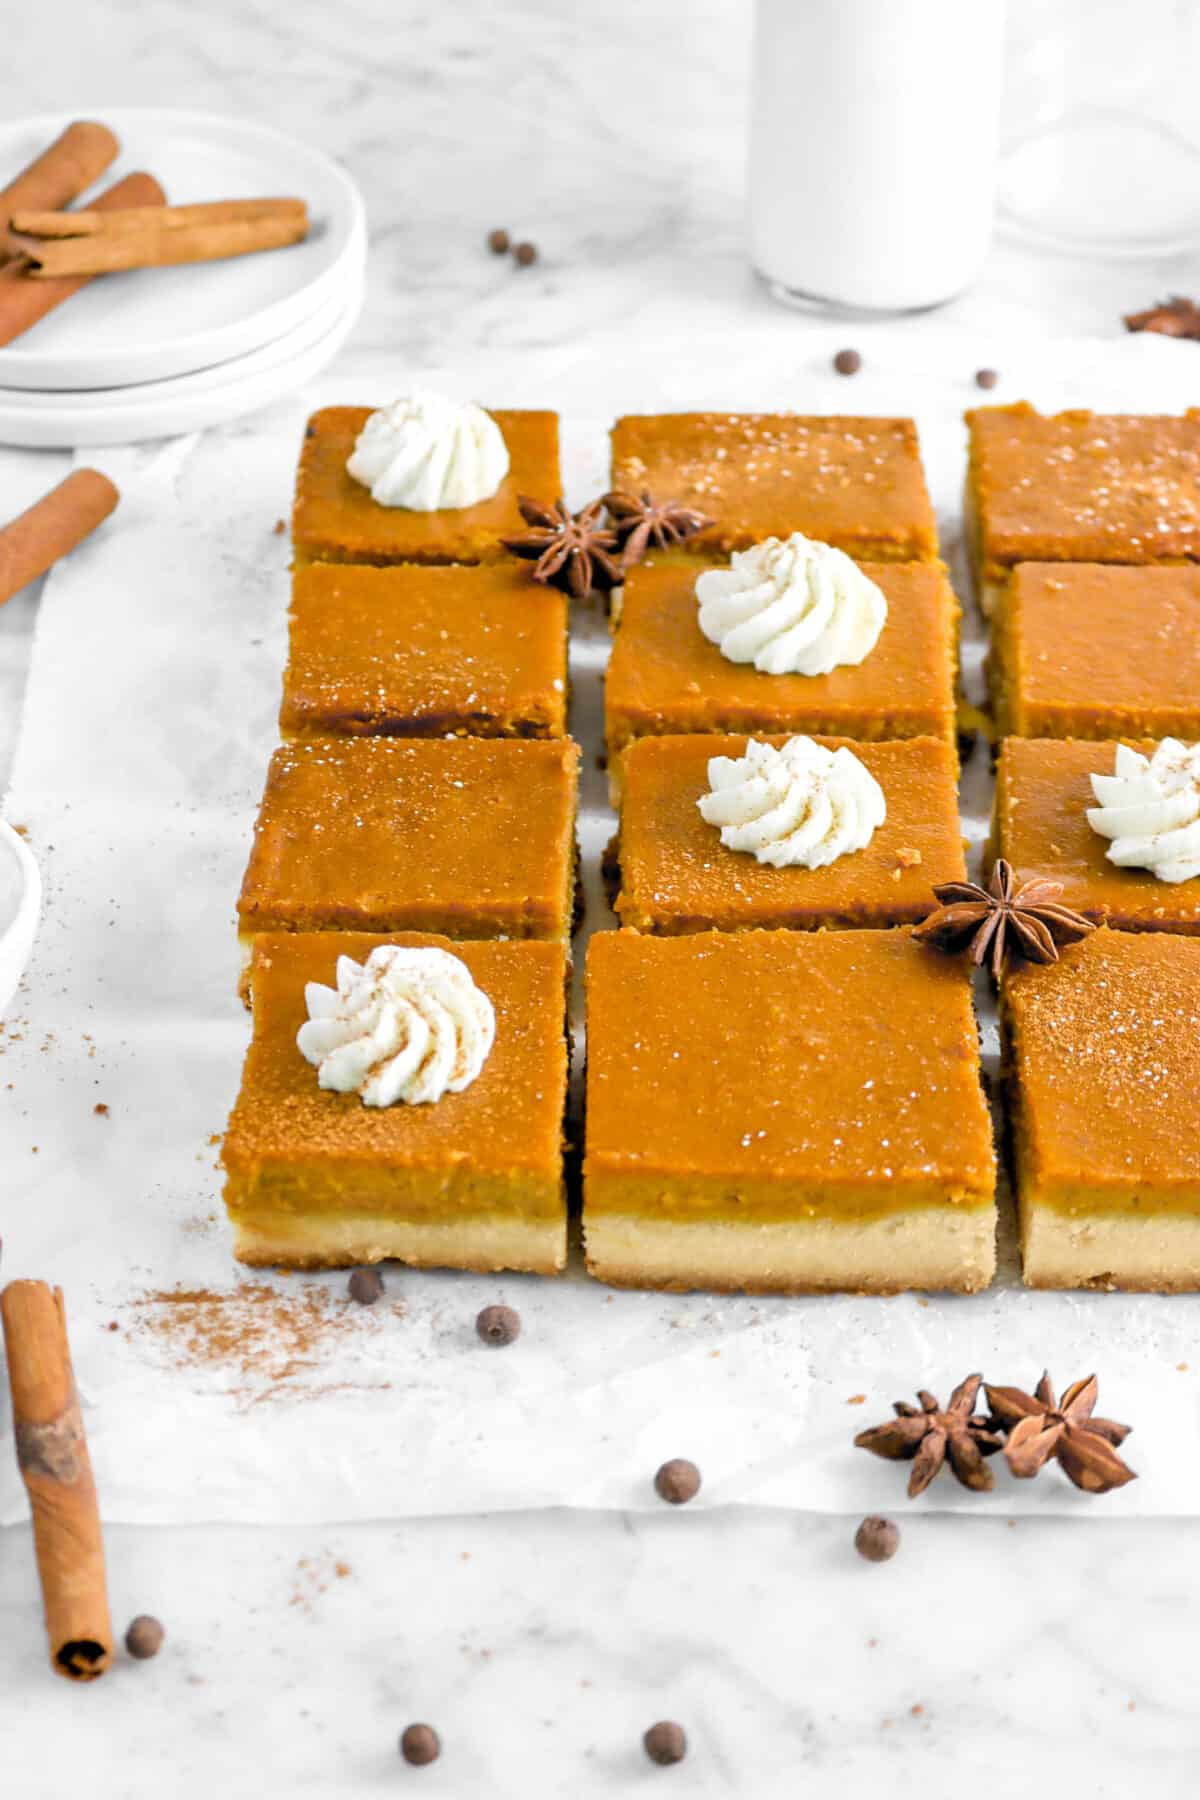 twelve pumpkin pie bars on parchment paper with whole spices, plates, and milk glass